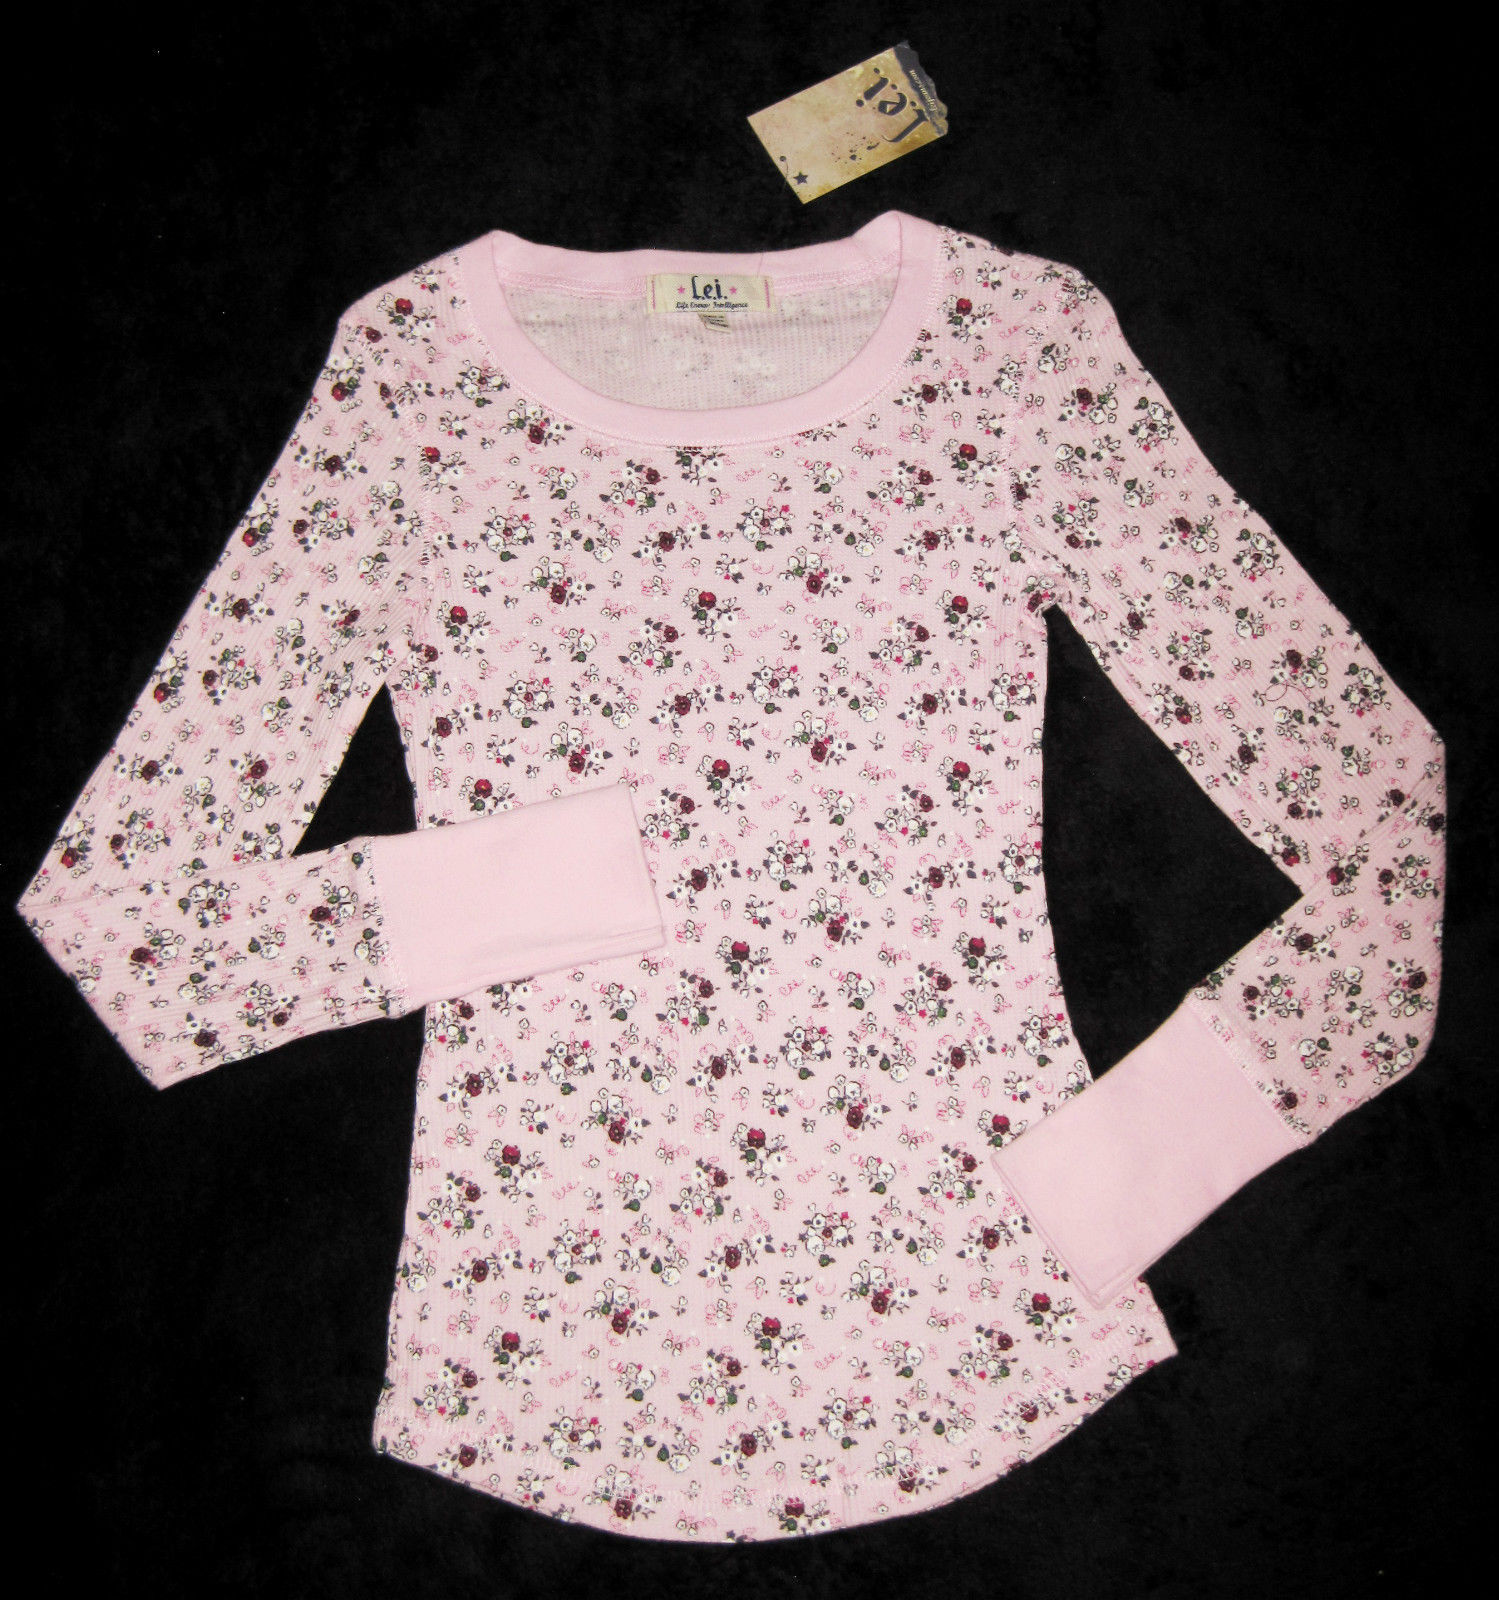 GIRLS 7 / 8 - Lei - L.e.i. Pullover Pink Calico Print  KNIT TOP